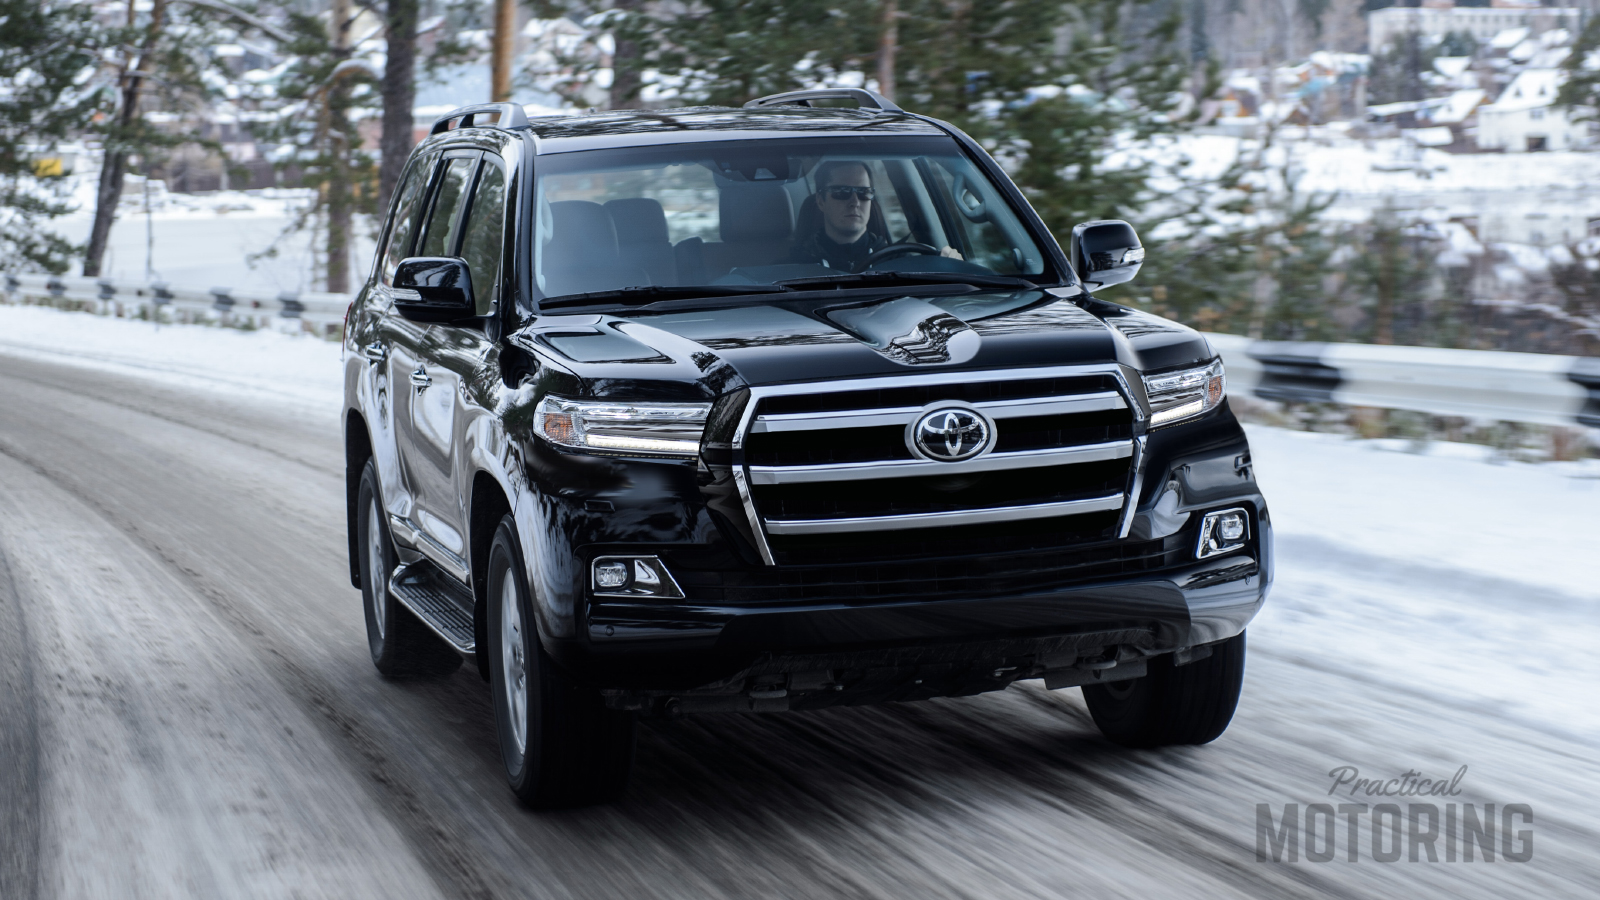 Toyota LandCruiser 3.5L Hybrid to be revealed in August | Practical Motoring